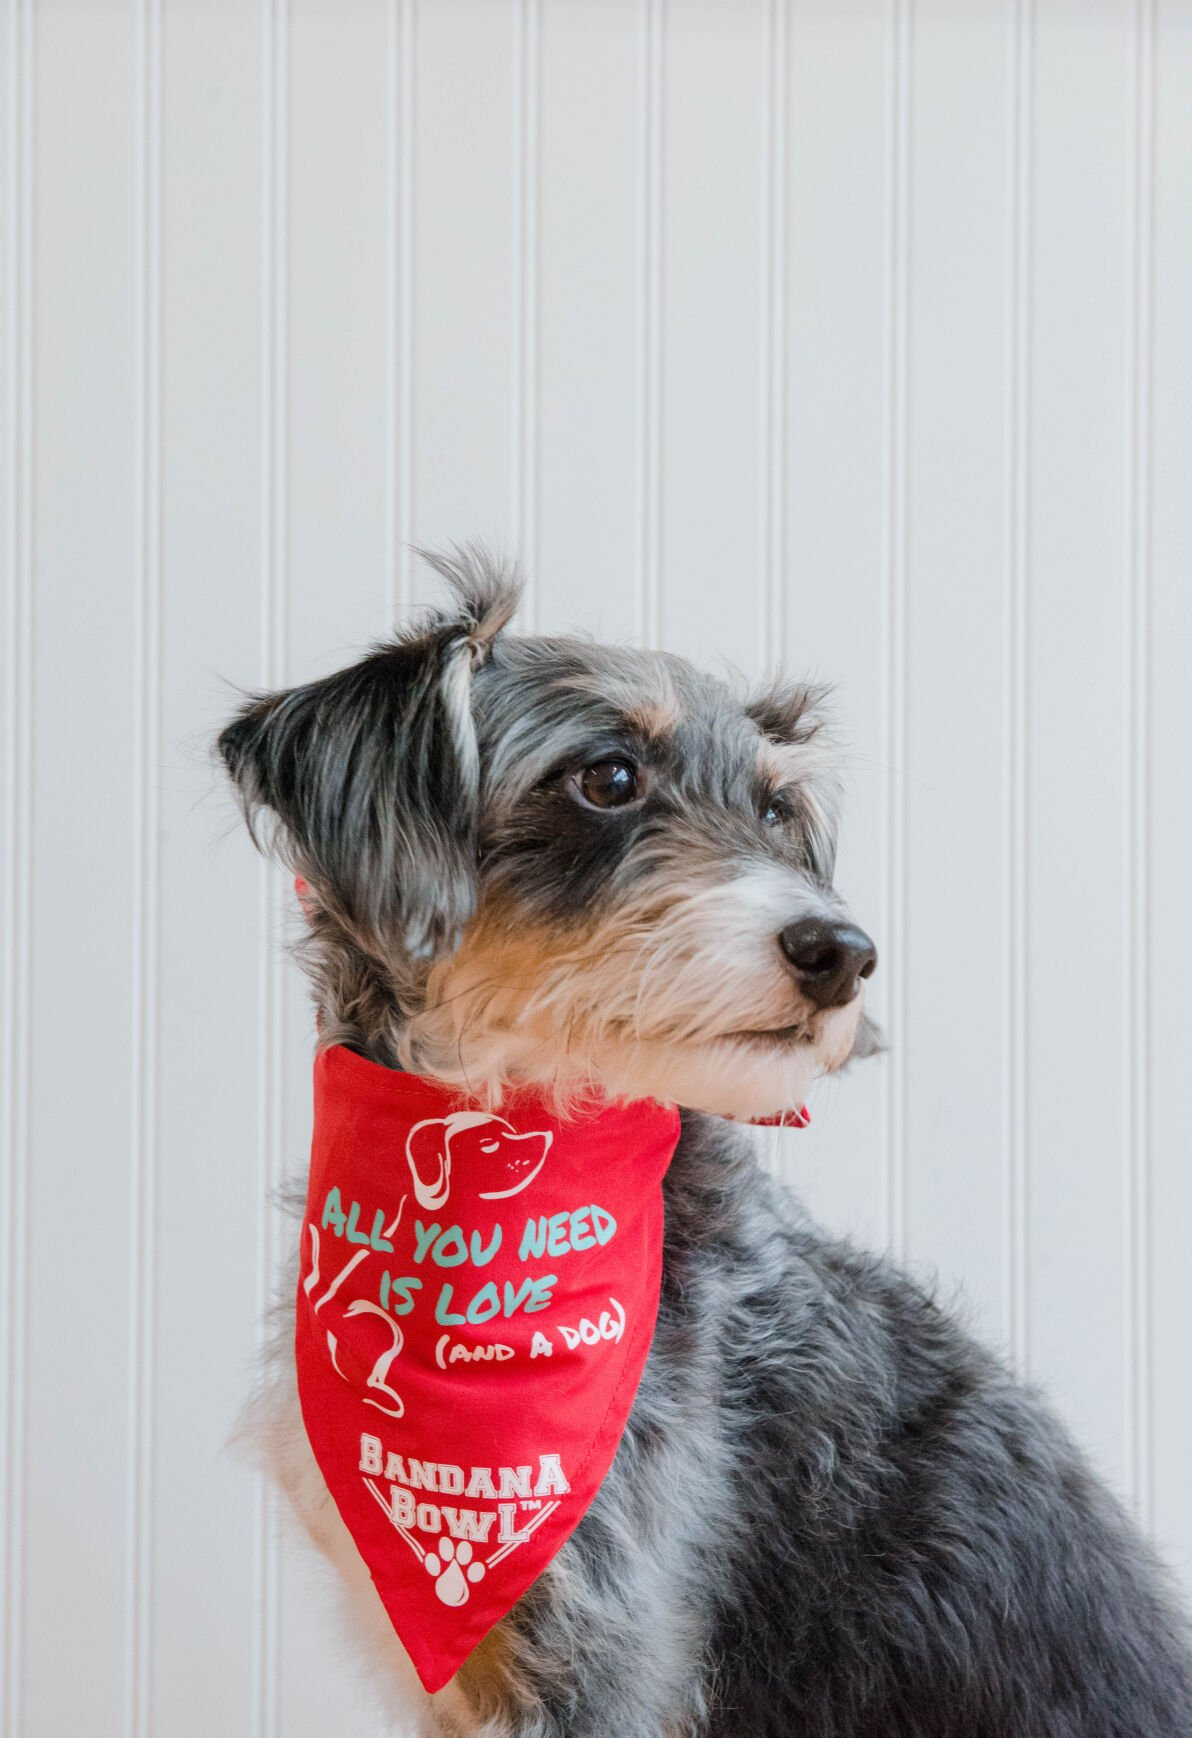 The Bandana Bowl lets dogs carry a water bowl on their necks during walks.